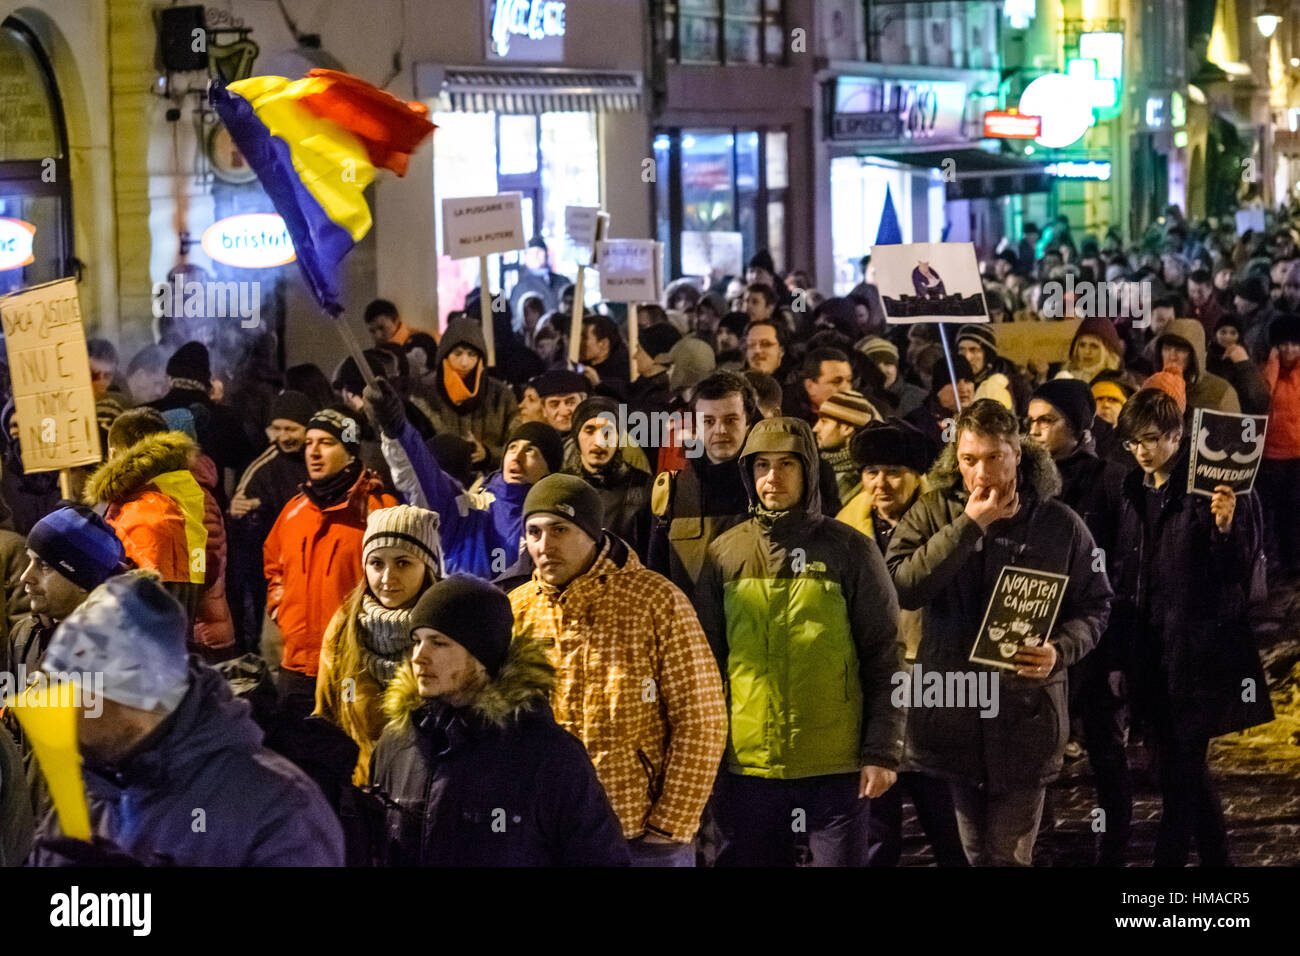 Brasov, Romania. 1st Feb, 2017. People protest against the decision of prisoner pardon, especially for corruption, - Stock Image